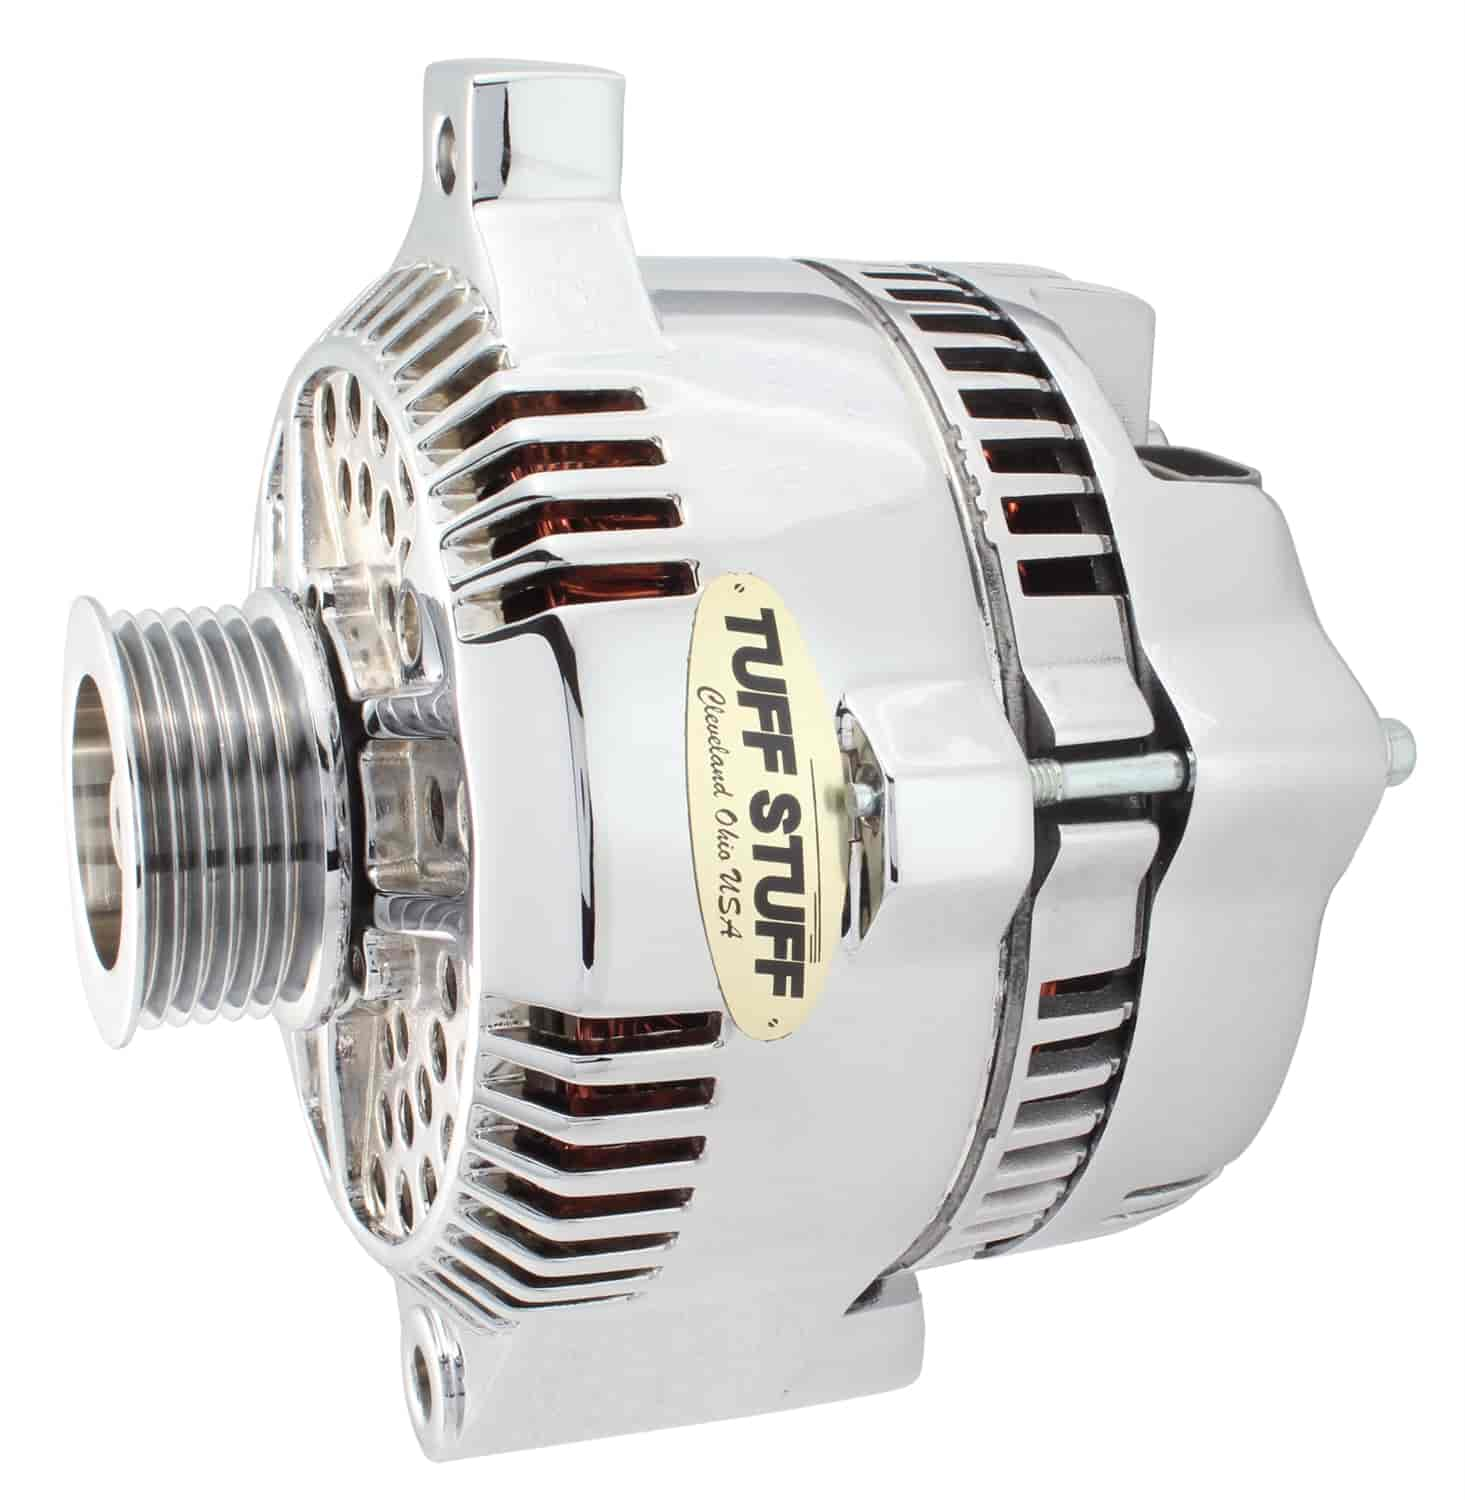 Tuff Stuff 7771A6G - Tuff Stuff Chrome Alternators